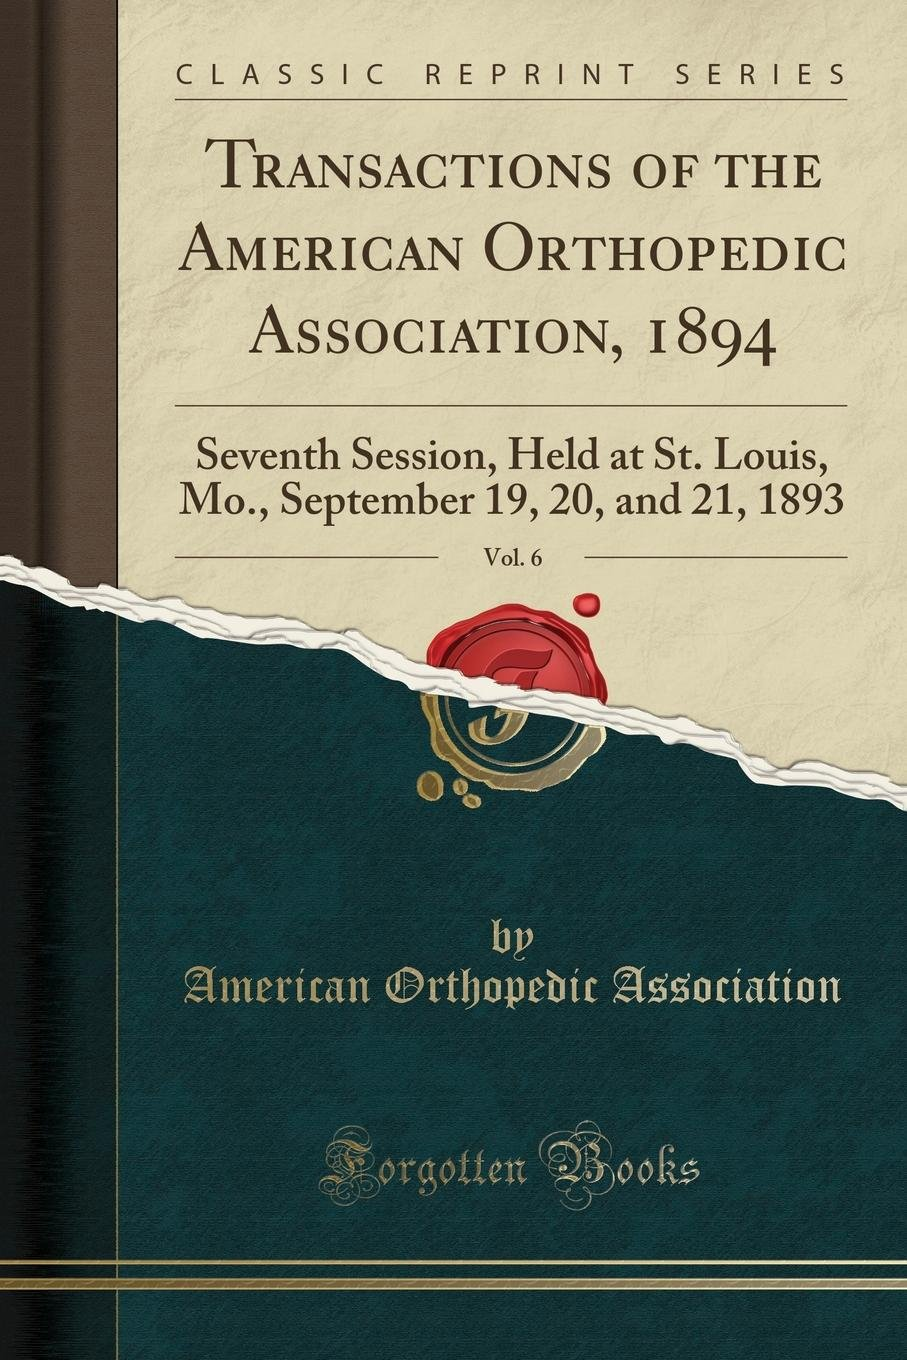 Download Transactions of the American Orthopedic Association, 1894, Vol. 6: Seventh Session, Held at St. Louis, Mo., September 19, 20, and 21, 1893 (Classic Reprint) pdf